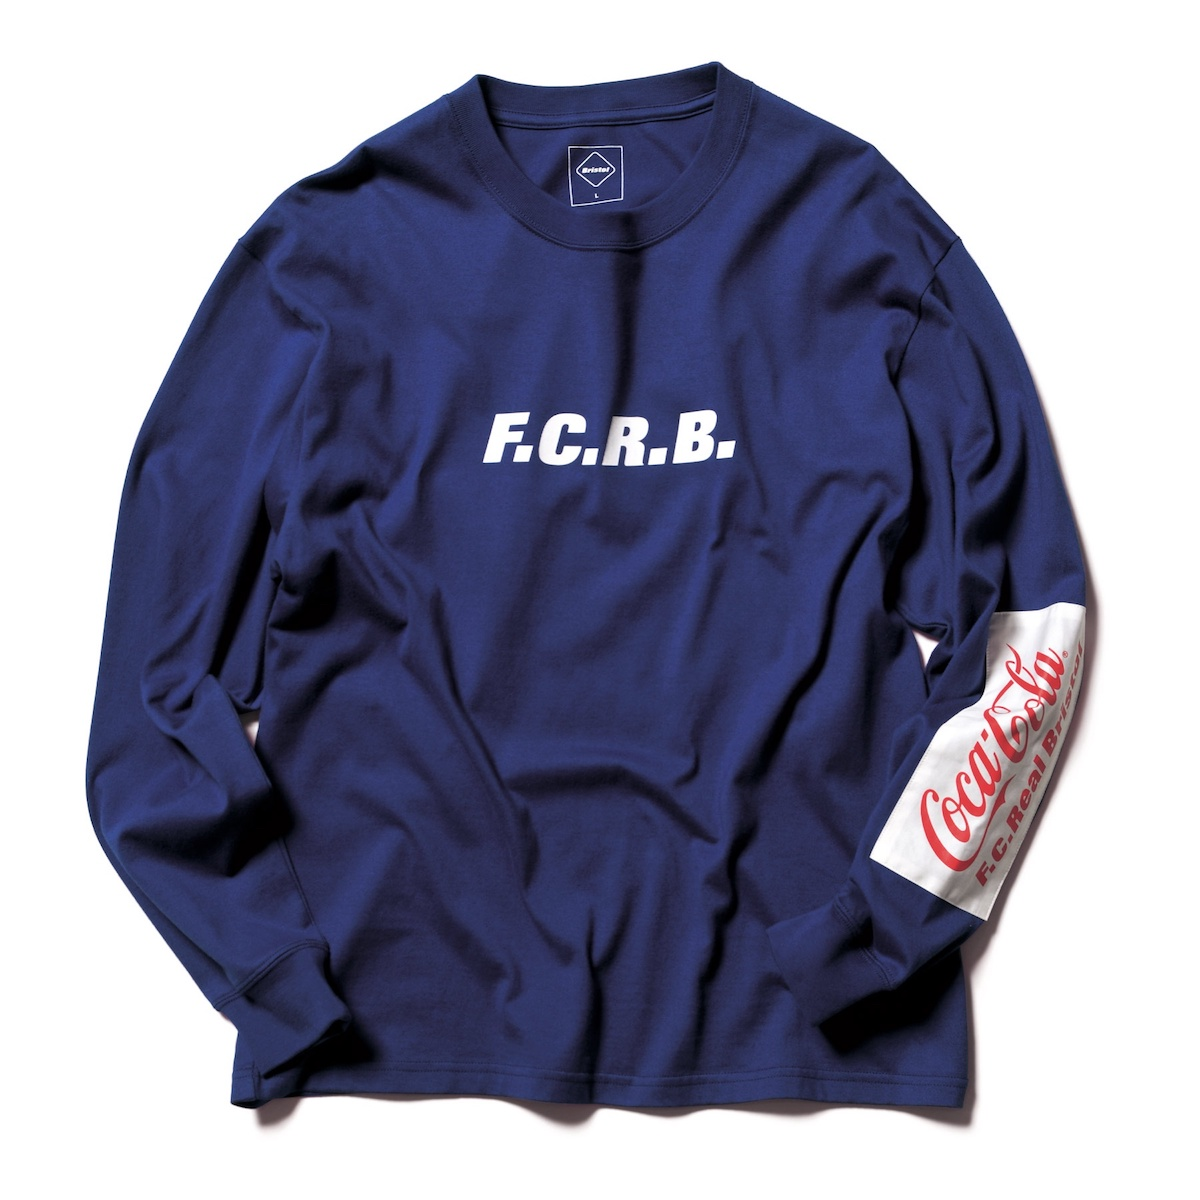 F.C.Real Bristol / COCA-COLA PATCHED L/S TEE (Navy)